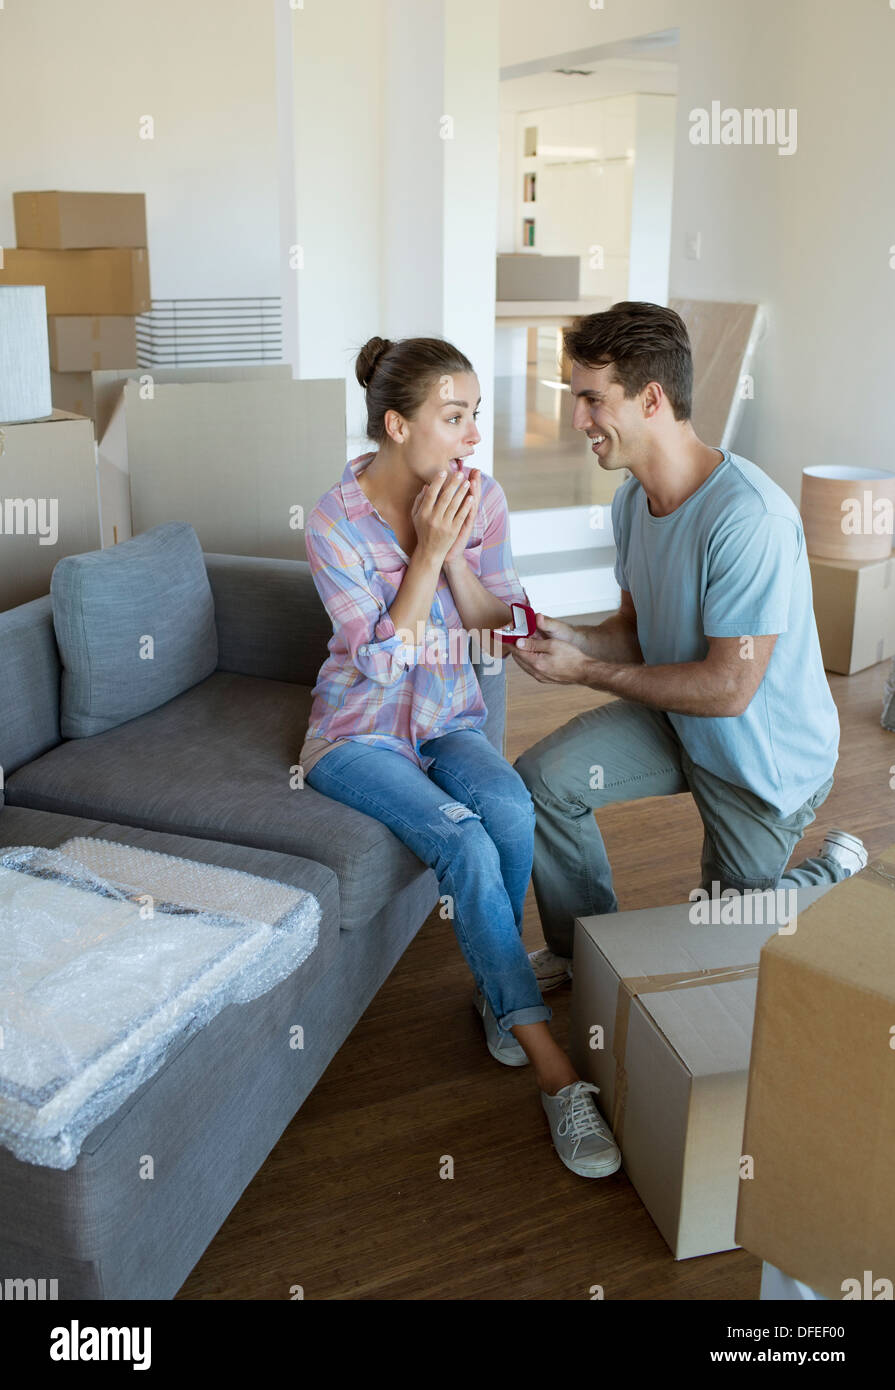 Man proposing to girlfriend in new house - Stock Image